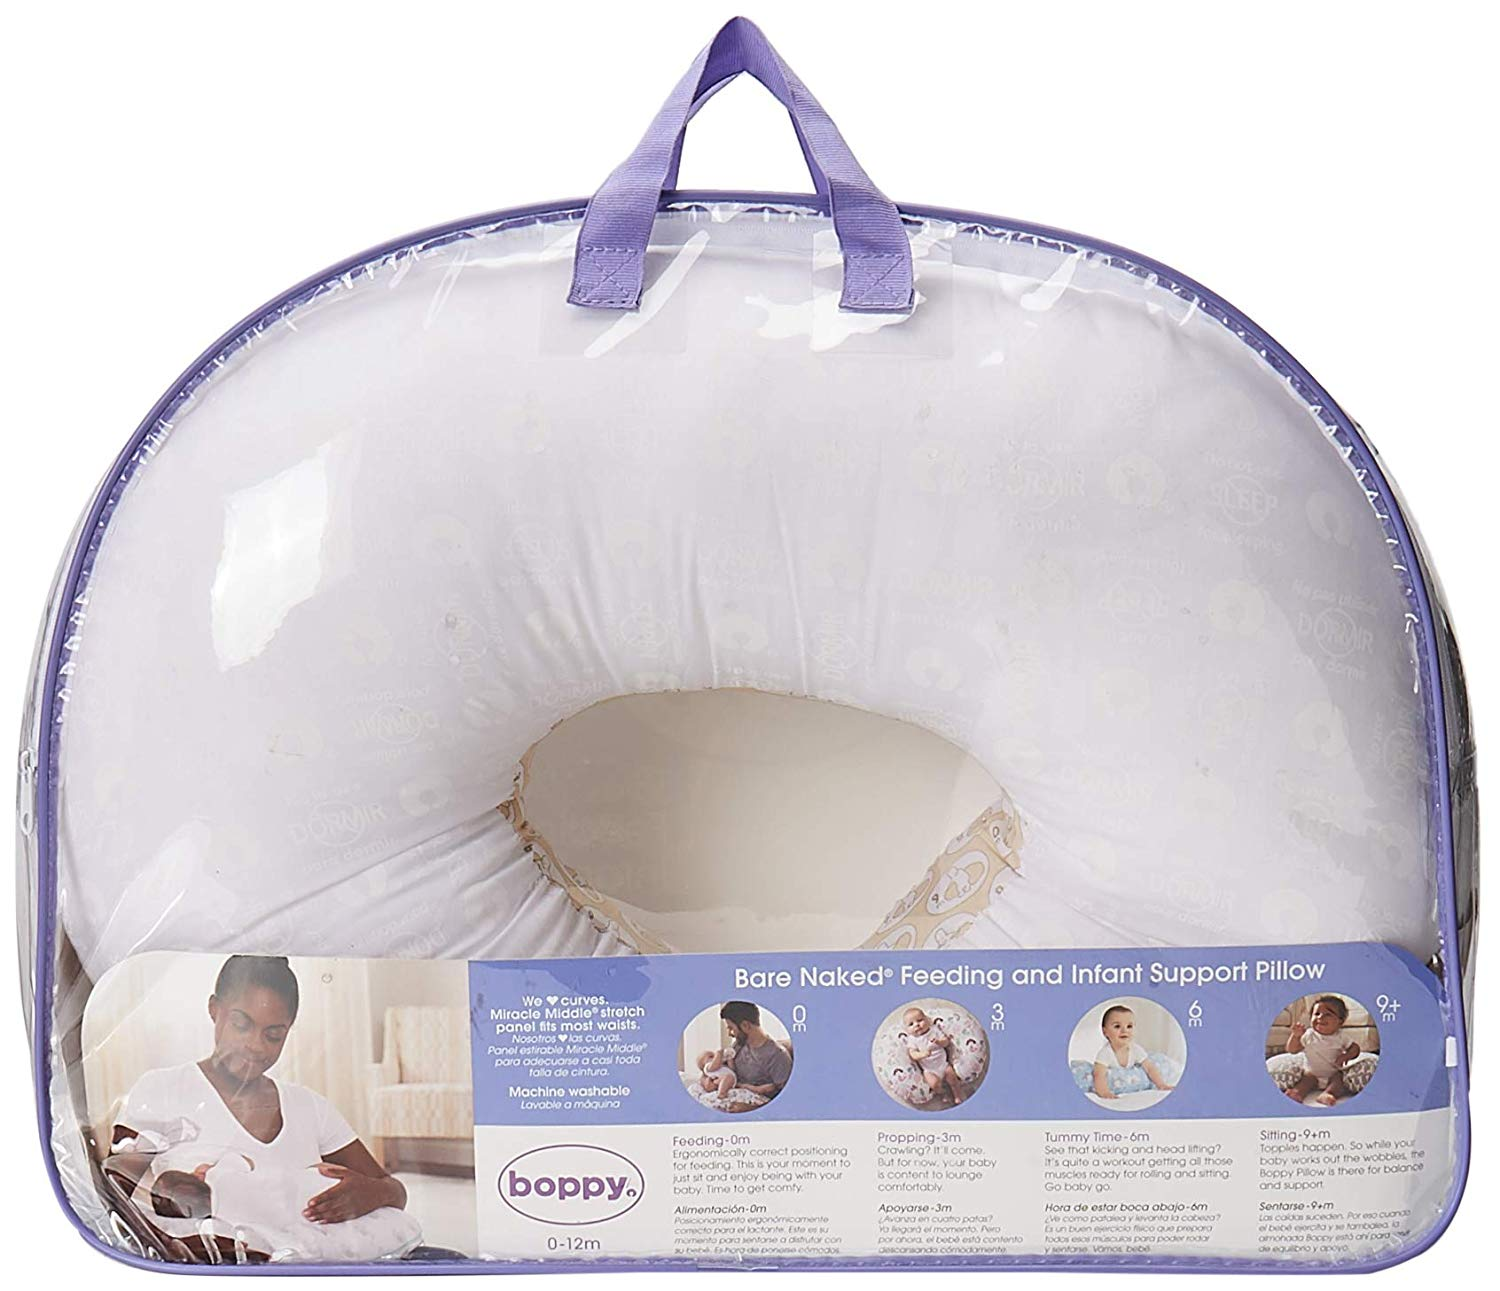 boppy miracle middle bare naked nursing pillow